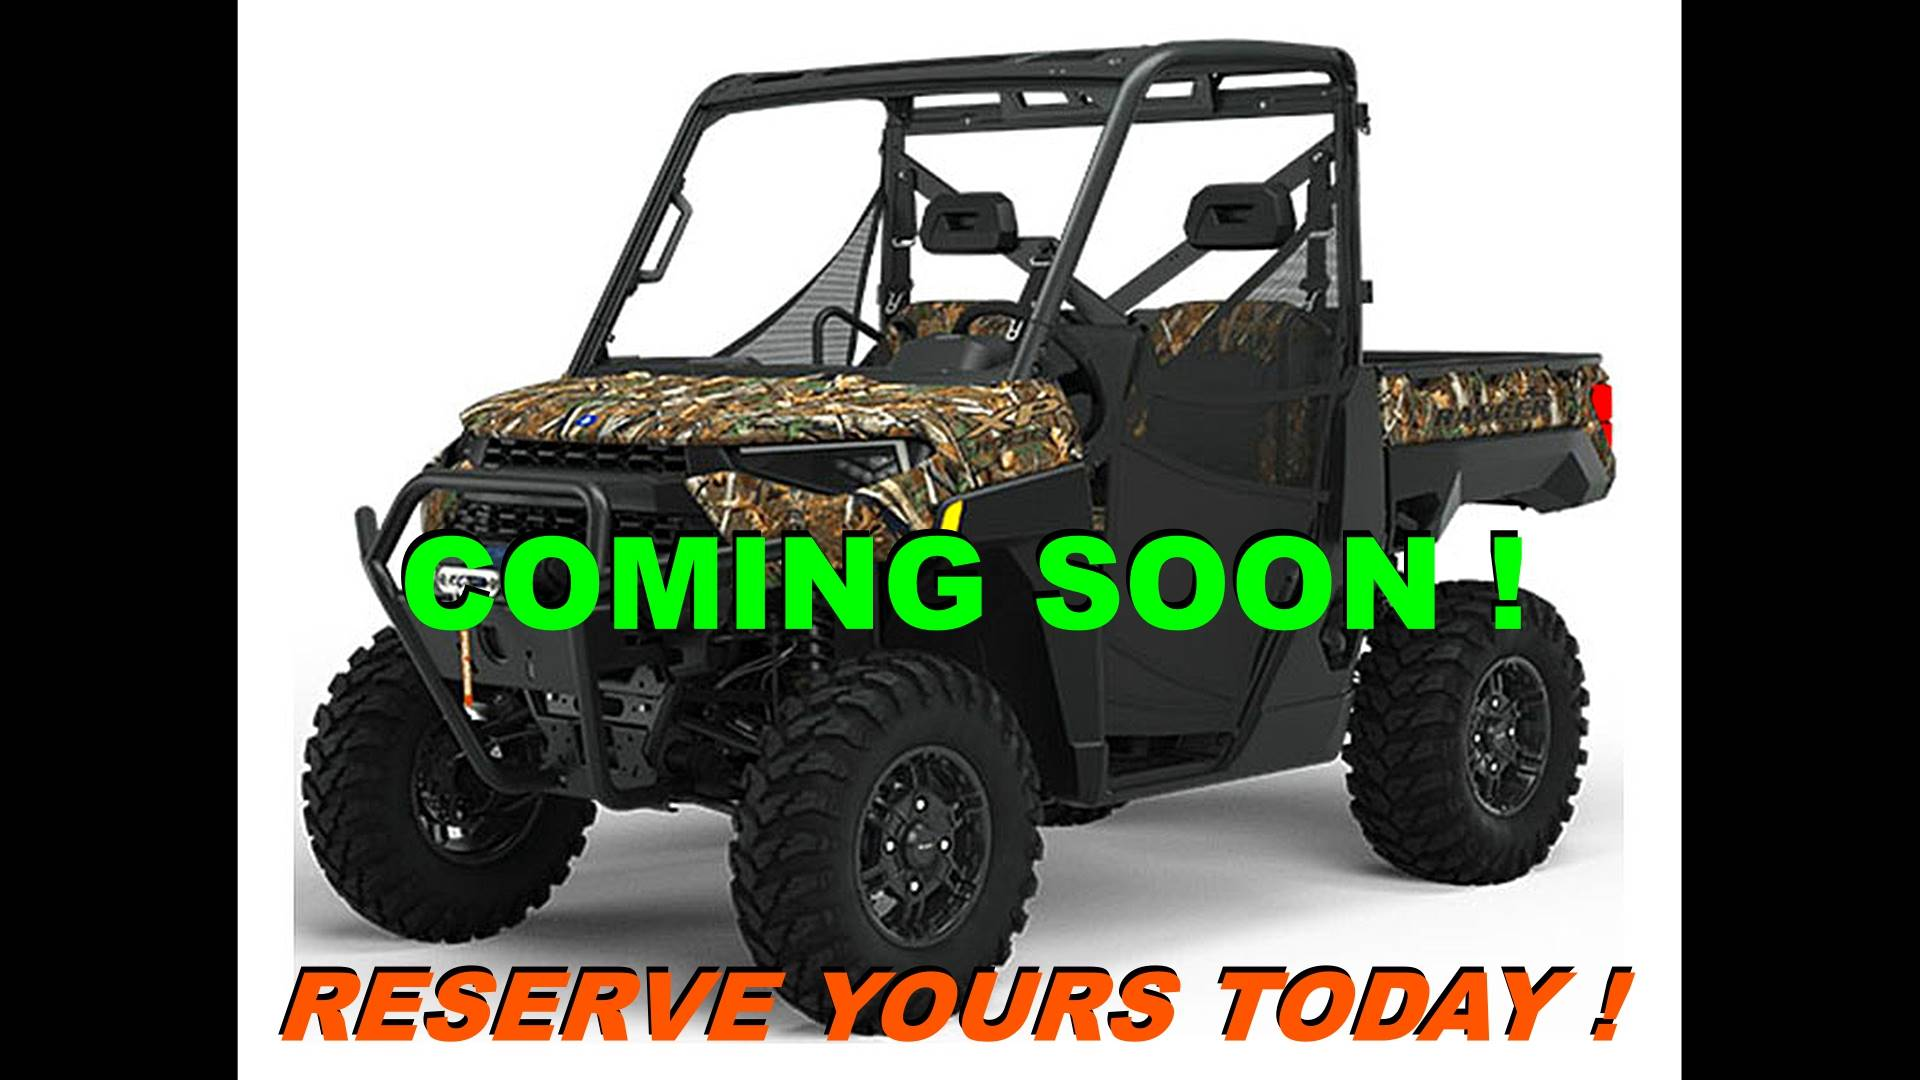 2021 Polaris RANGER XP 1000 BIG GAME EDITION in Salinas, California - Photo 1